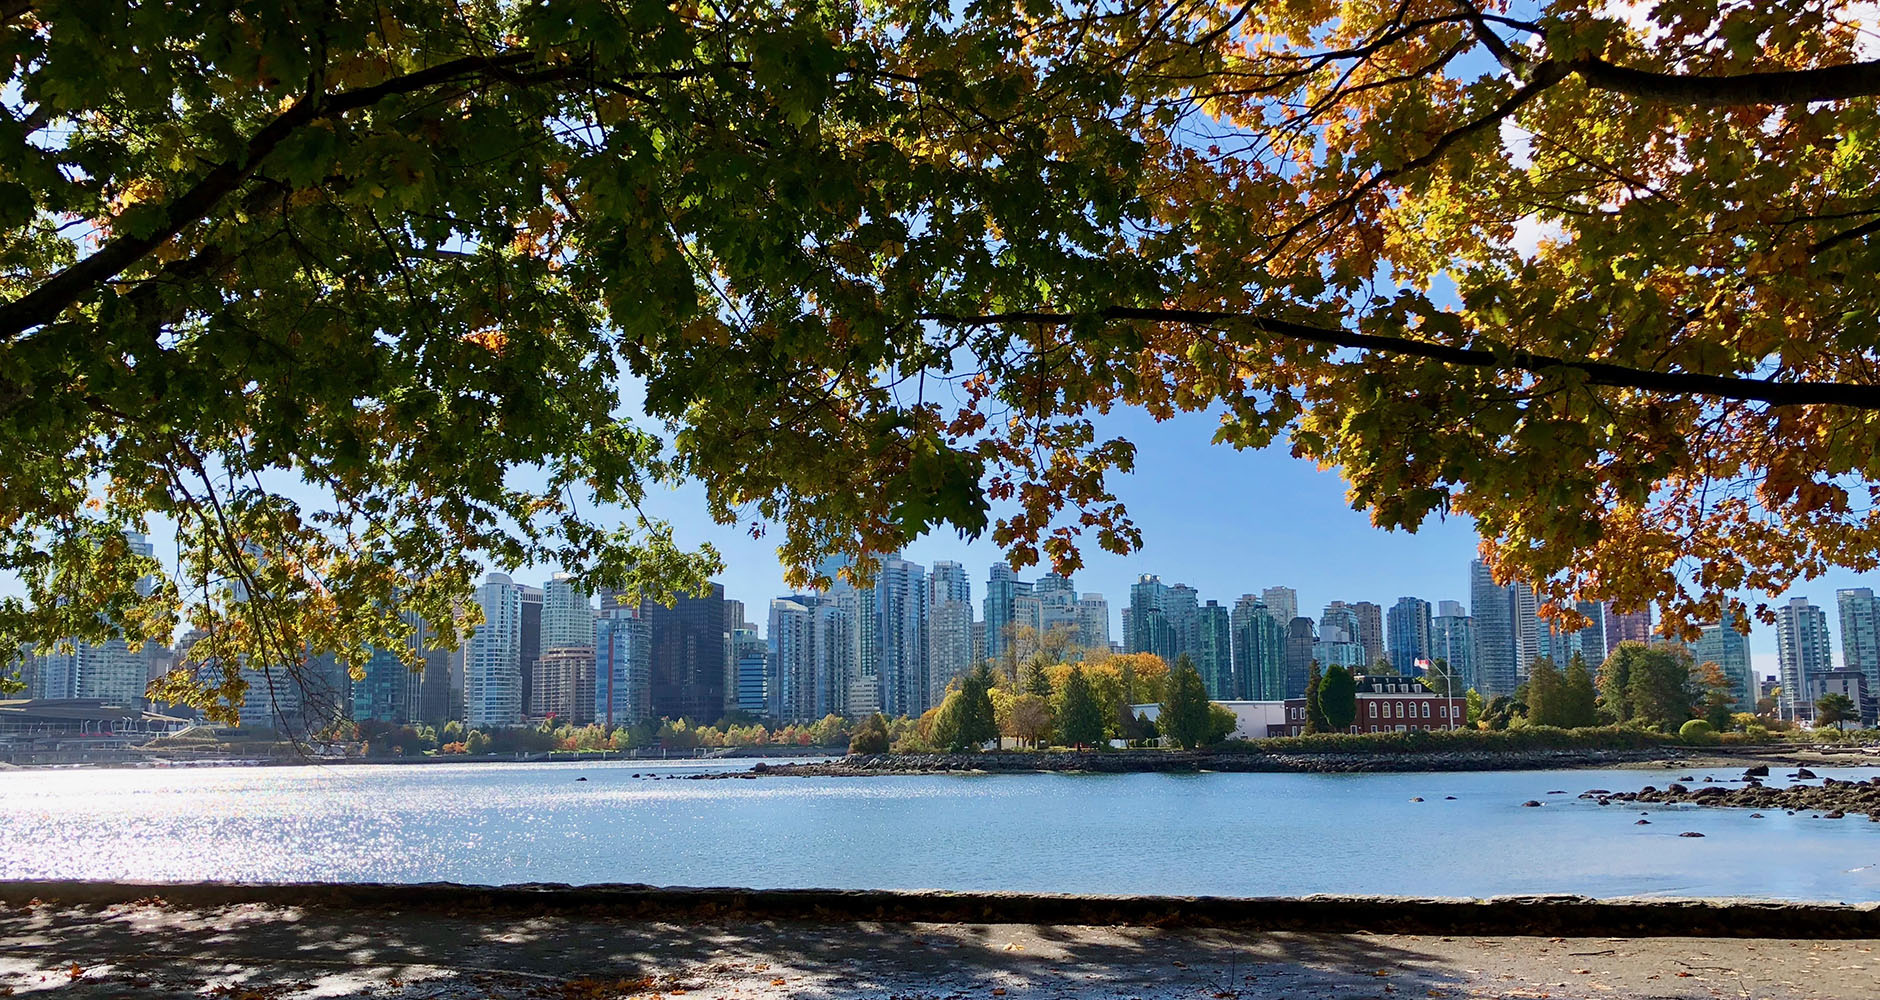 Cycling around Stanley Park in Vancouver, Canada